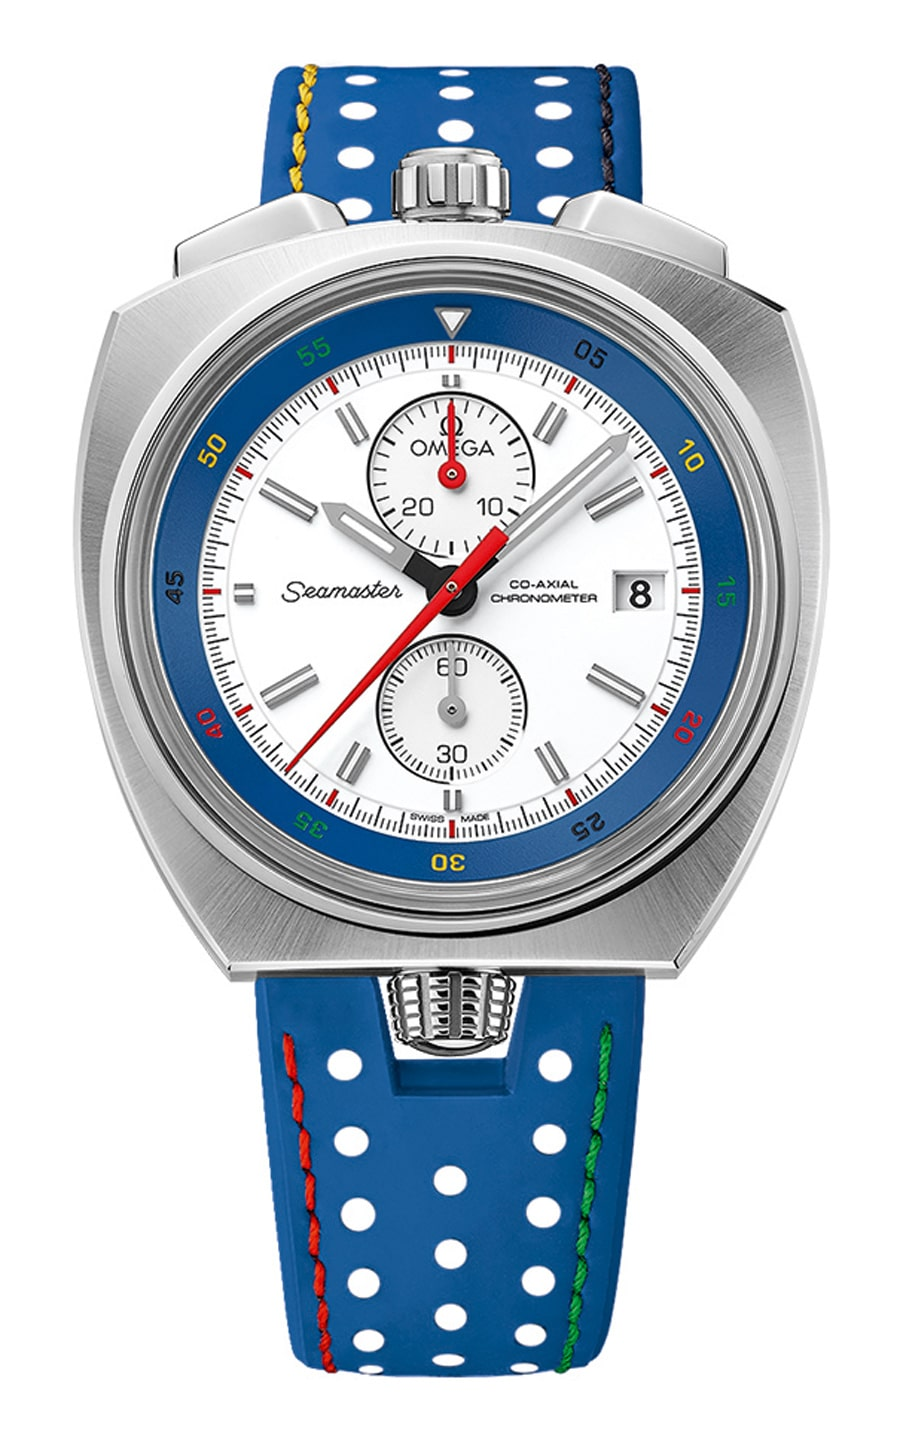 Omega: Seamaster Bullhead Rio Co-Axial Chronograph Limited Edition